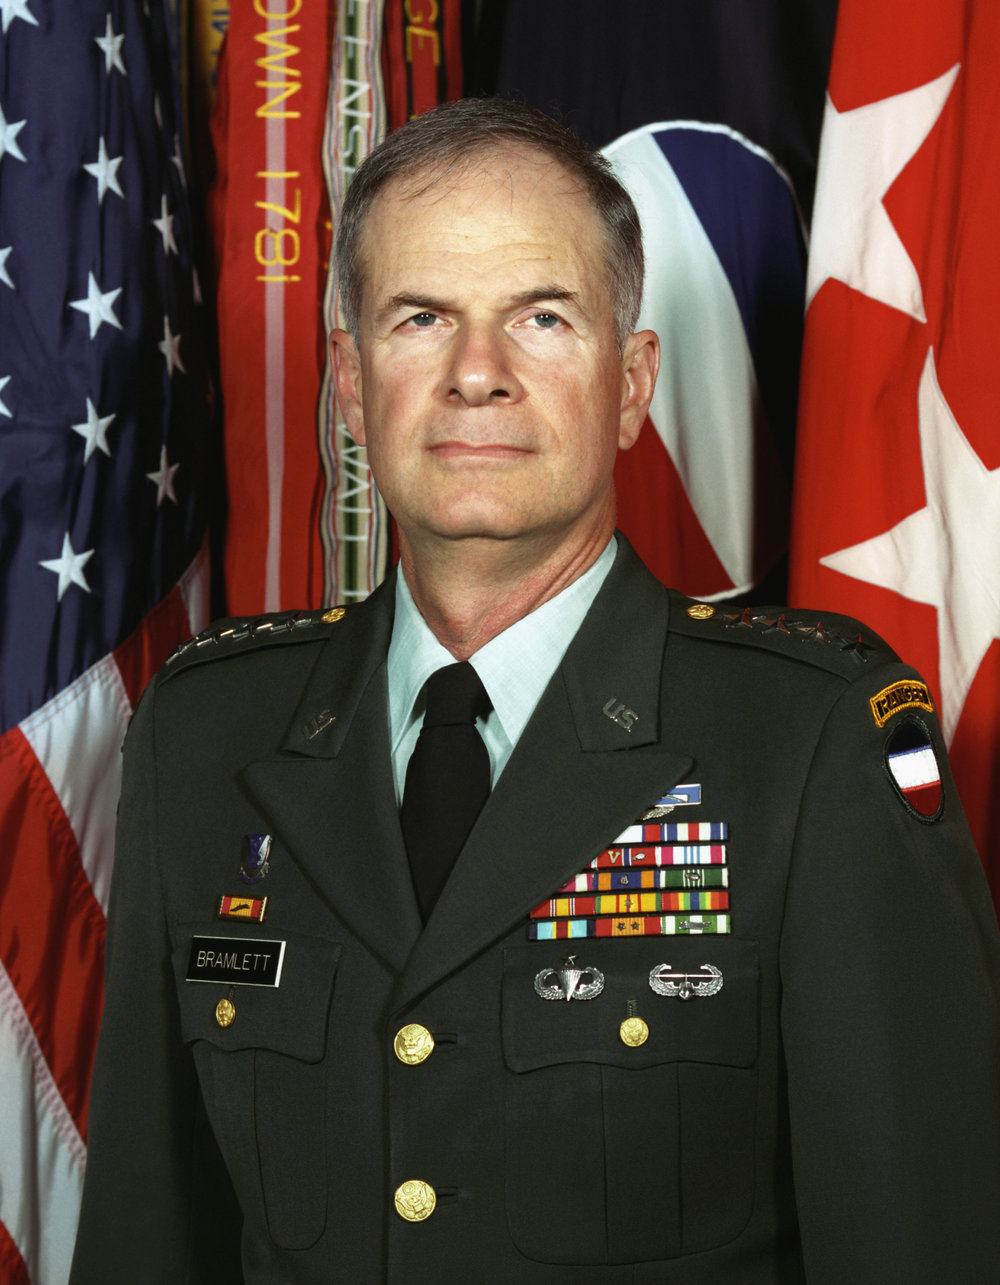 General (Ret.) David Bramlett (USMA '64), former Commander, U.S. Army Forces Command